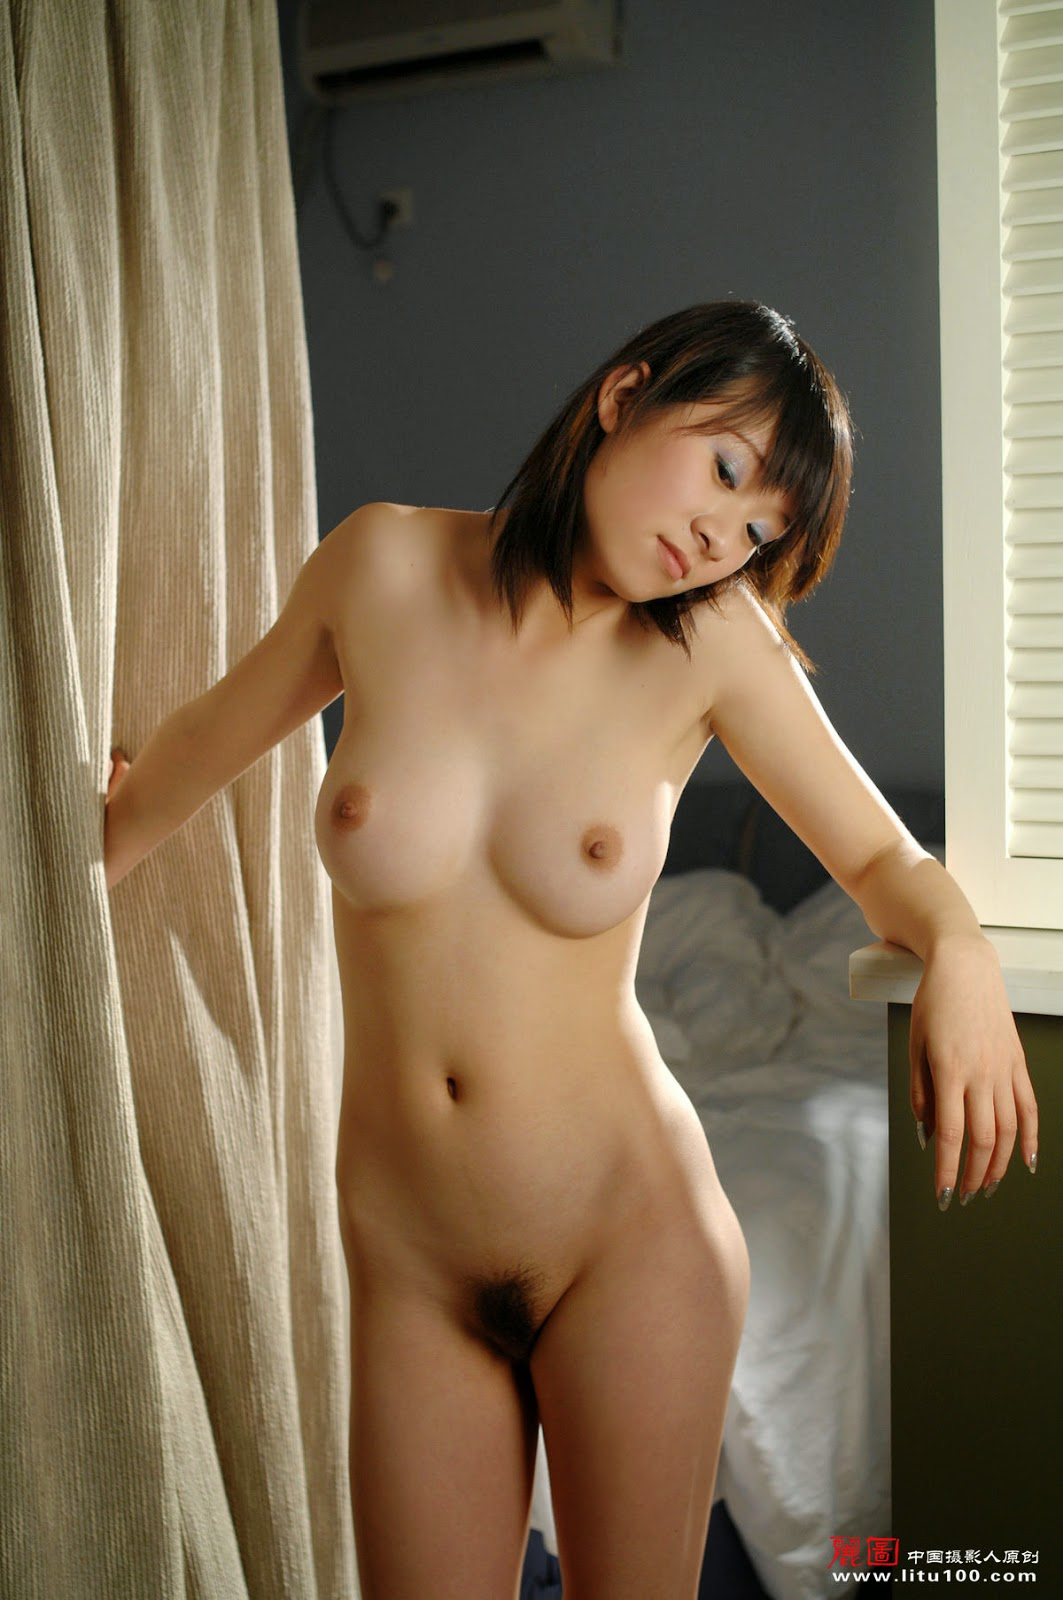 Chinese Actress Nude Photo